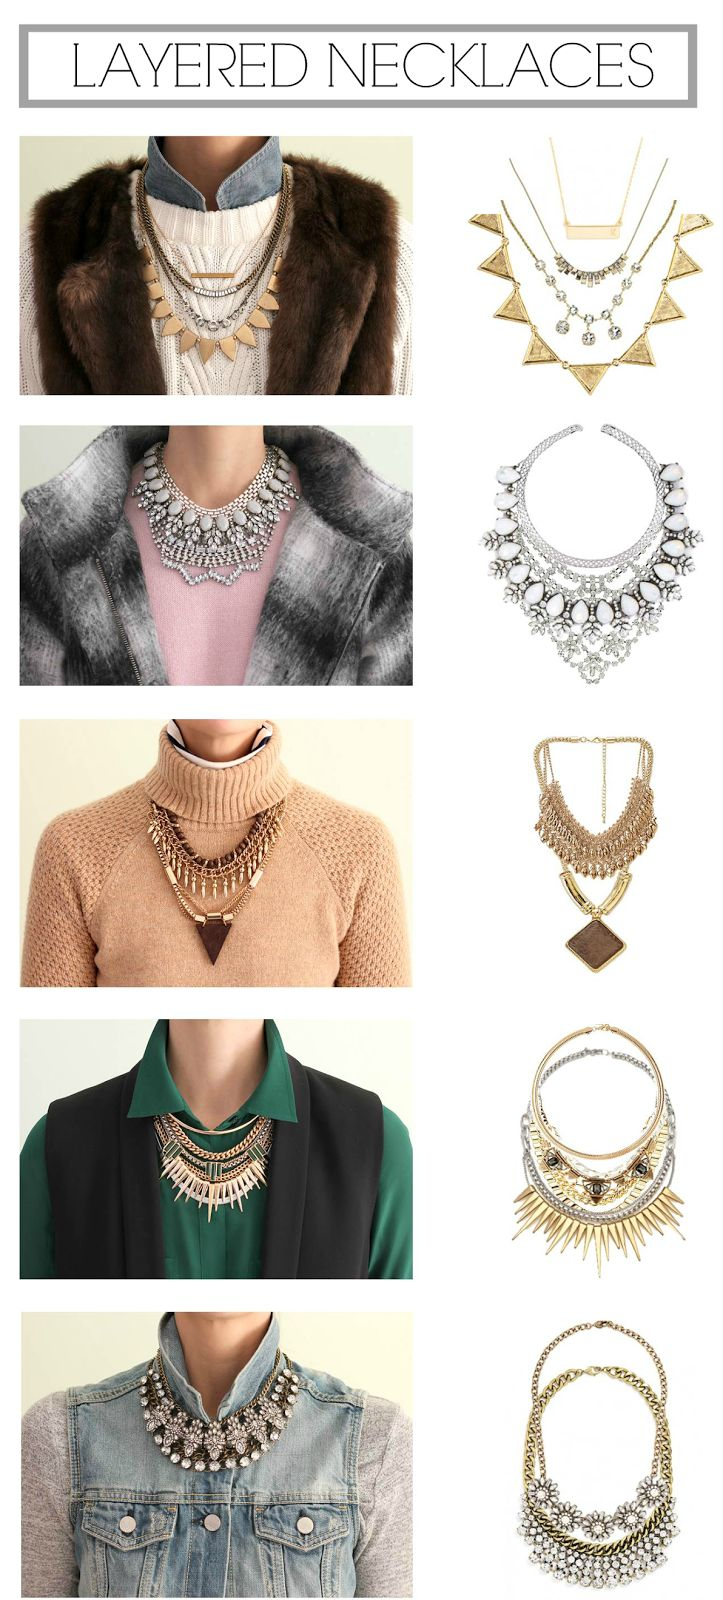 How to layer necklaces (hint: you need necklace extenders to get the perfect length)